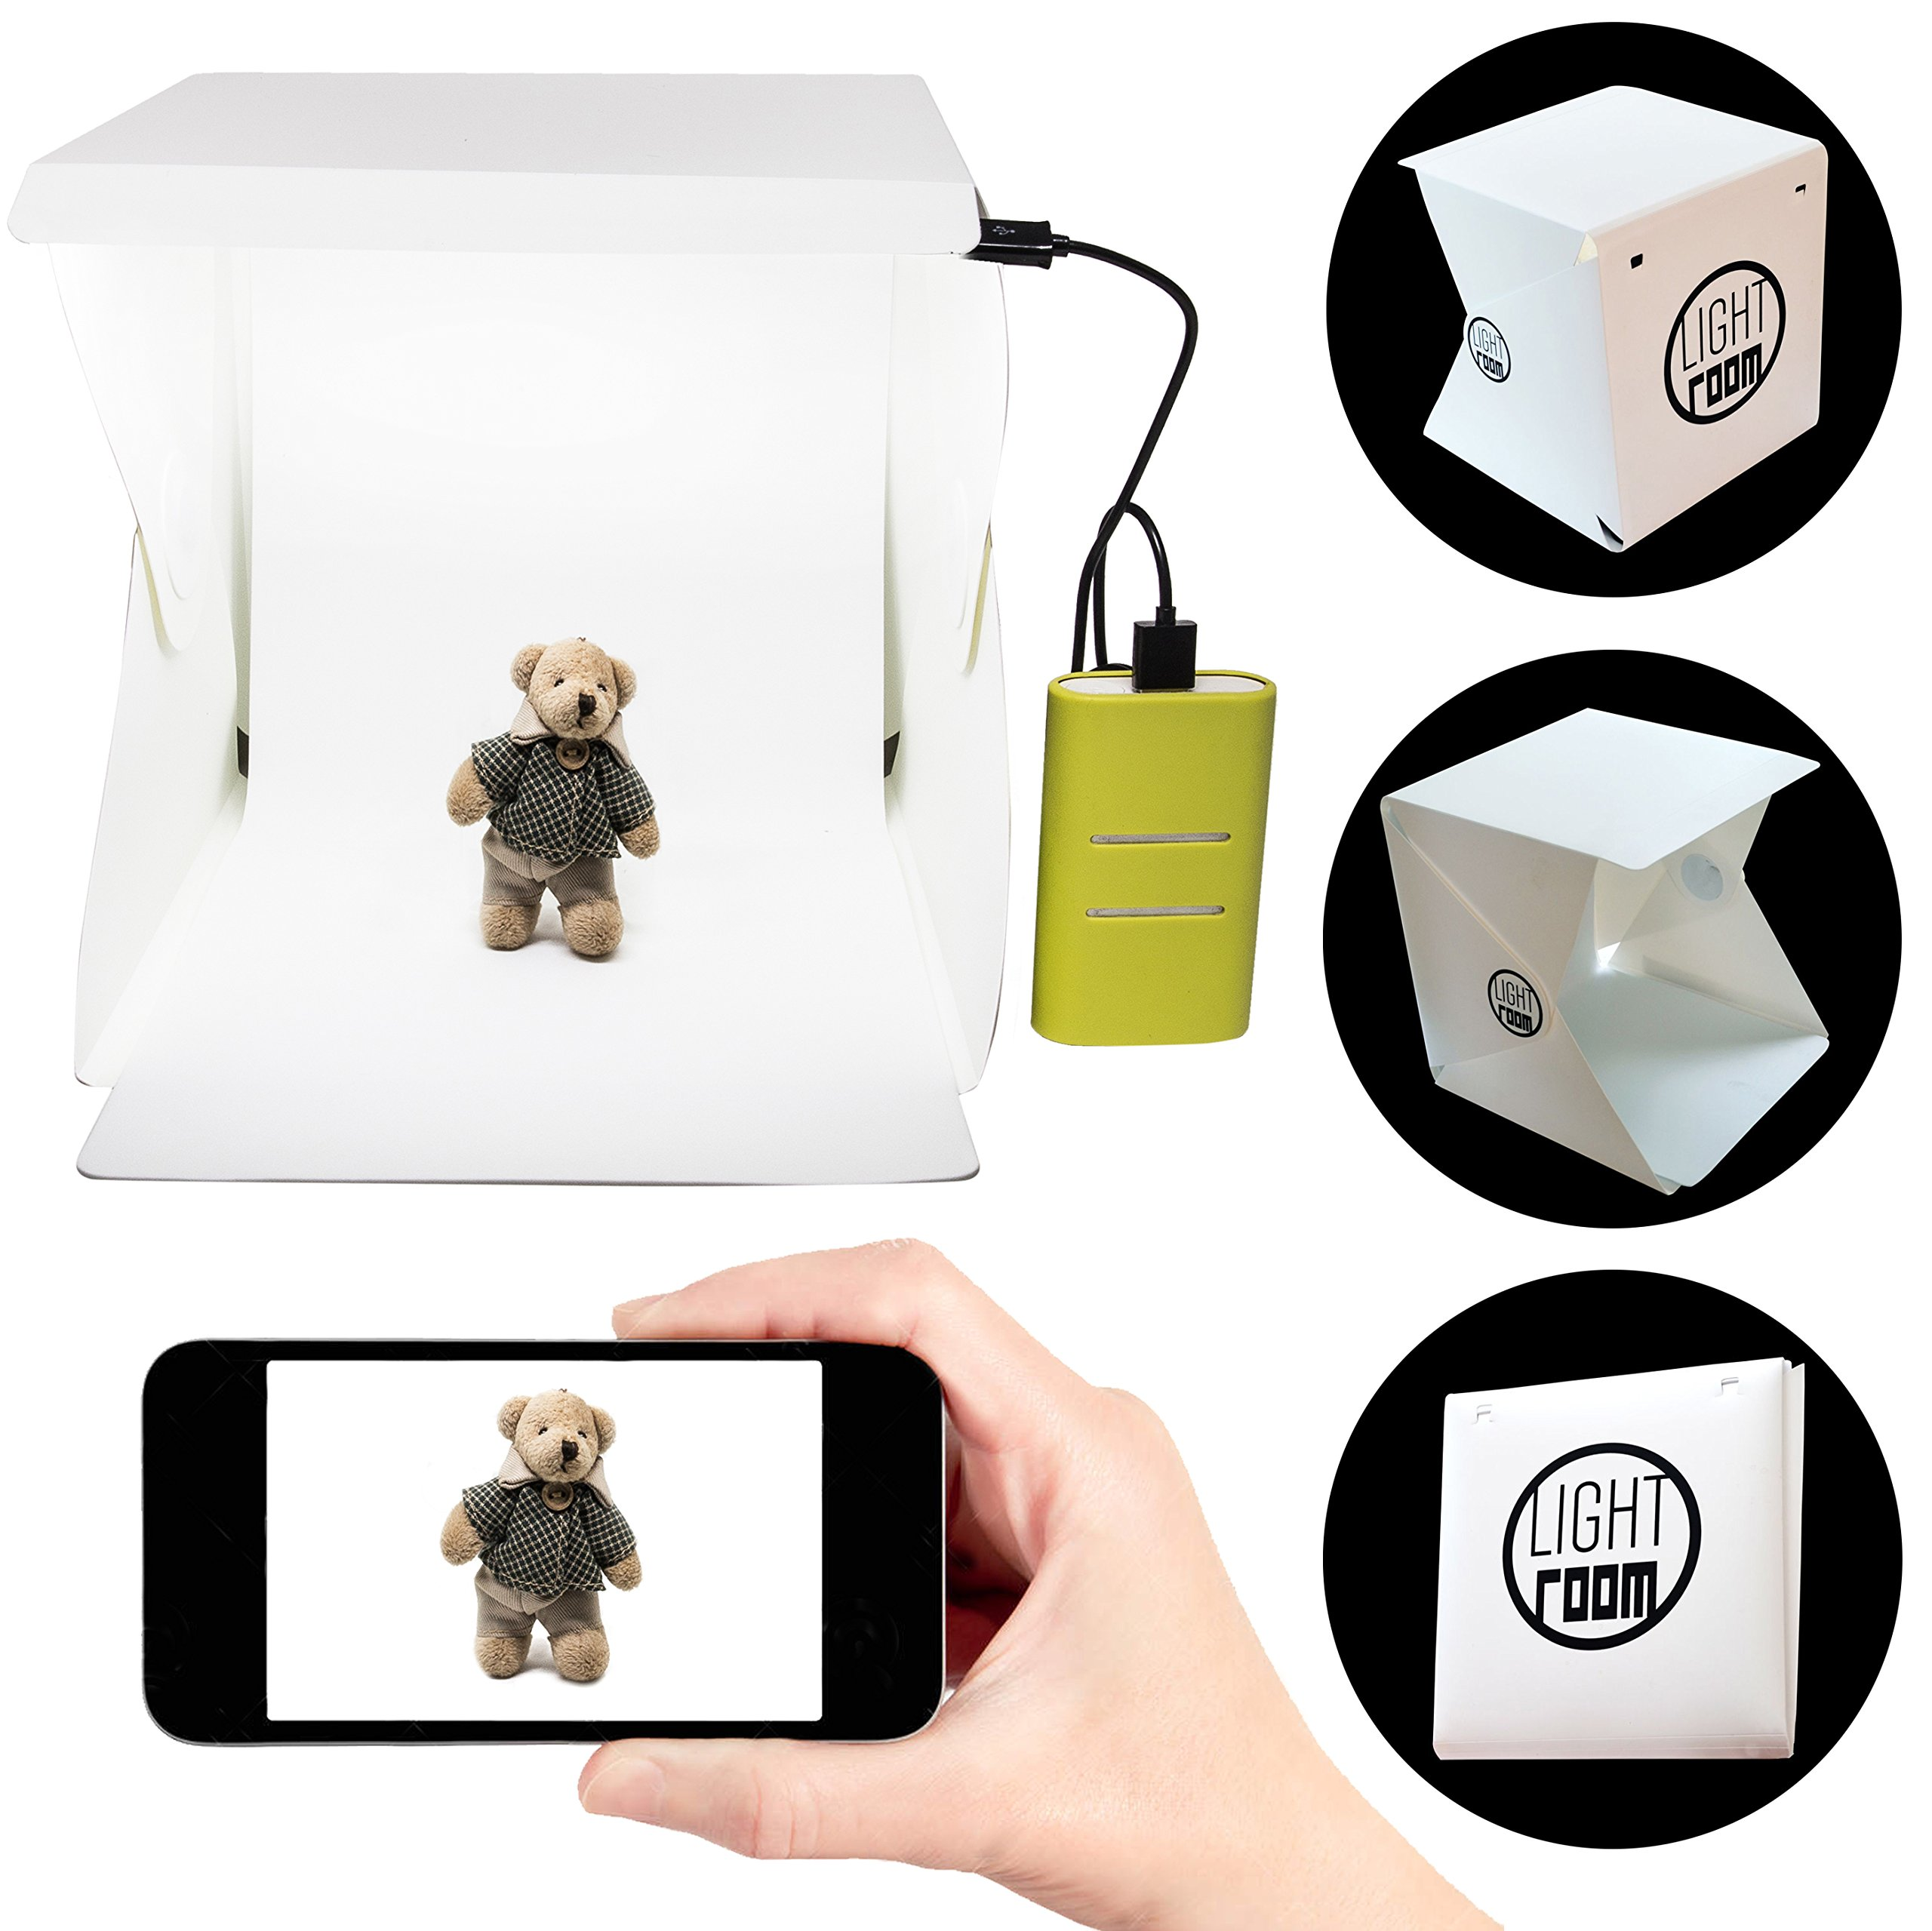 Portable Photography Studio 9 Inch - Mini Photo Studio Lightbox Product Photography Kit w/ LED Lights + Black & White Backdrop + 3ft USB Cord (Photo Box Light Tent)